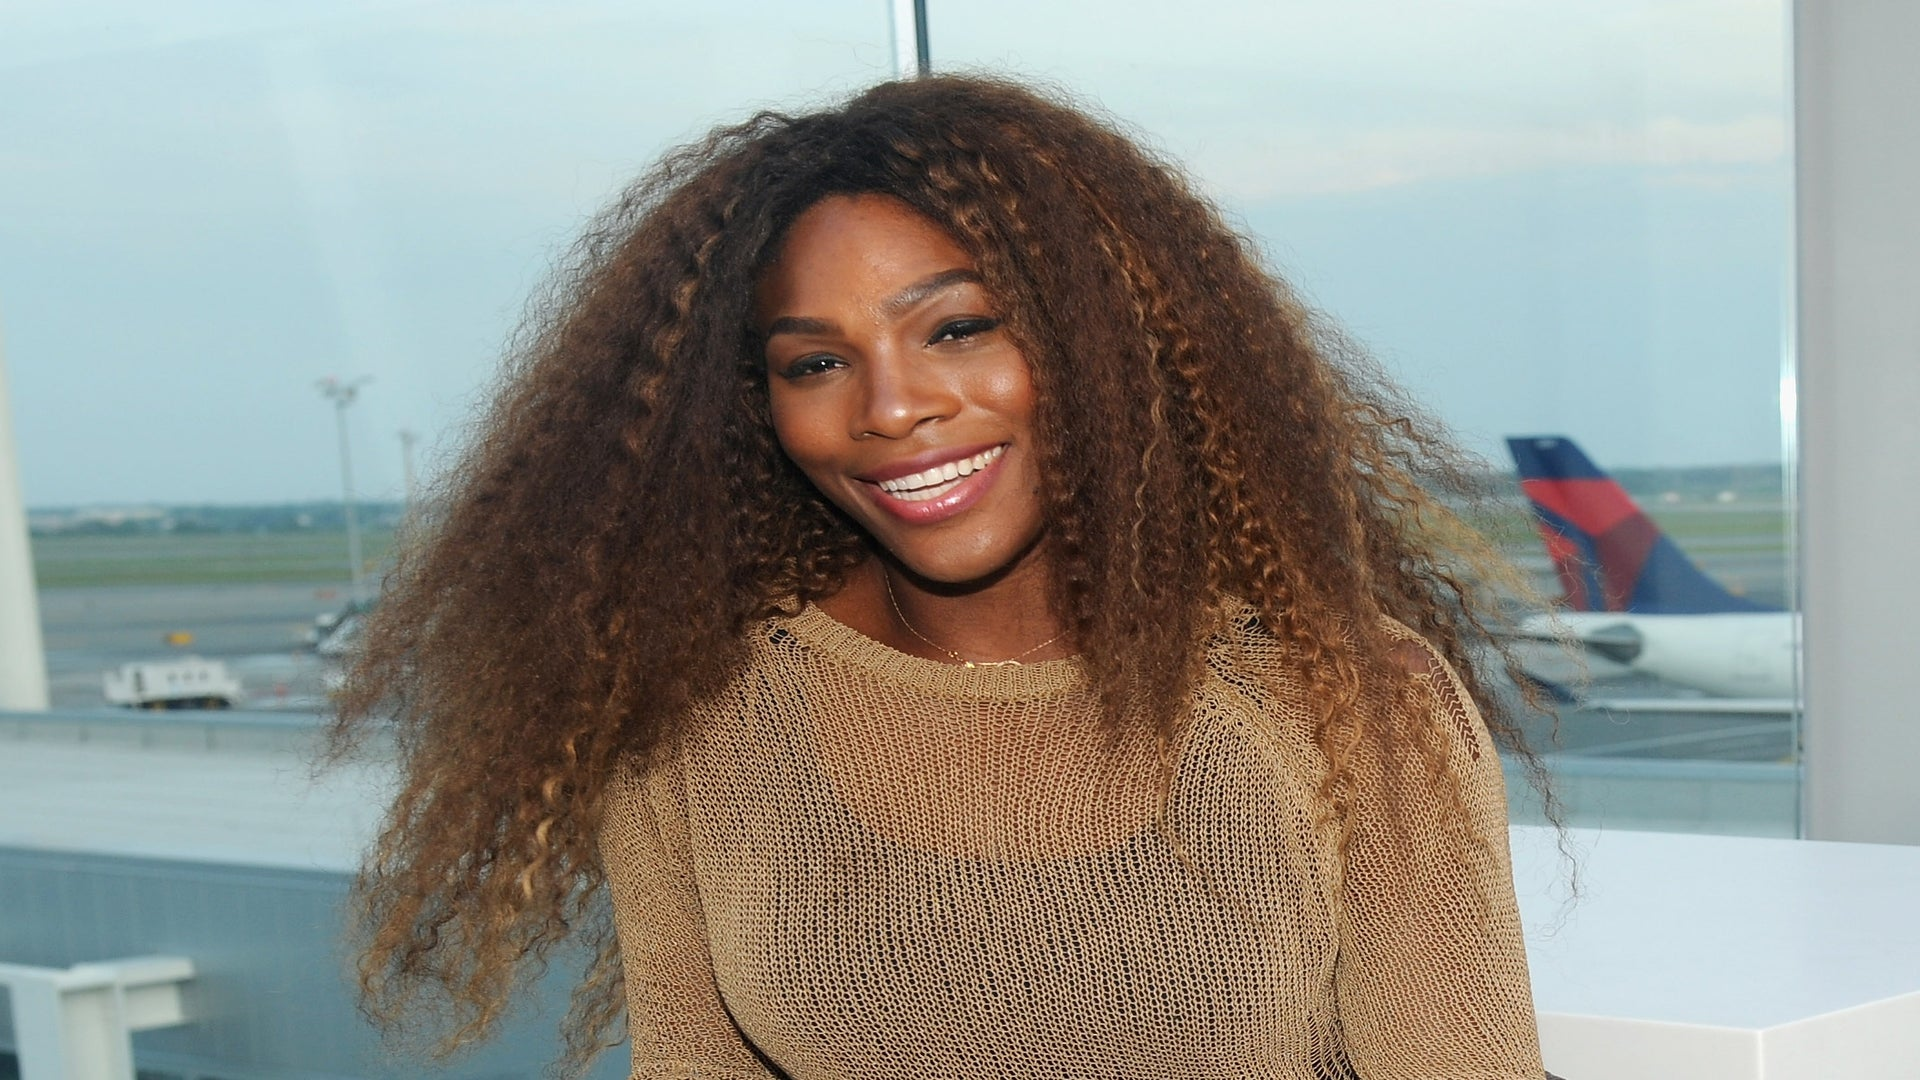 Hairstyle File: Serena Williams' Crimps and Curls